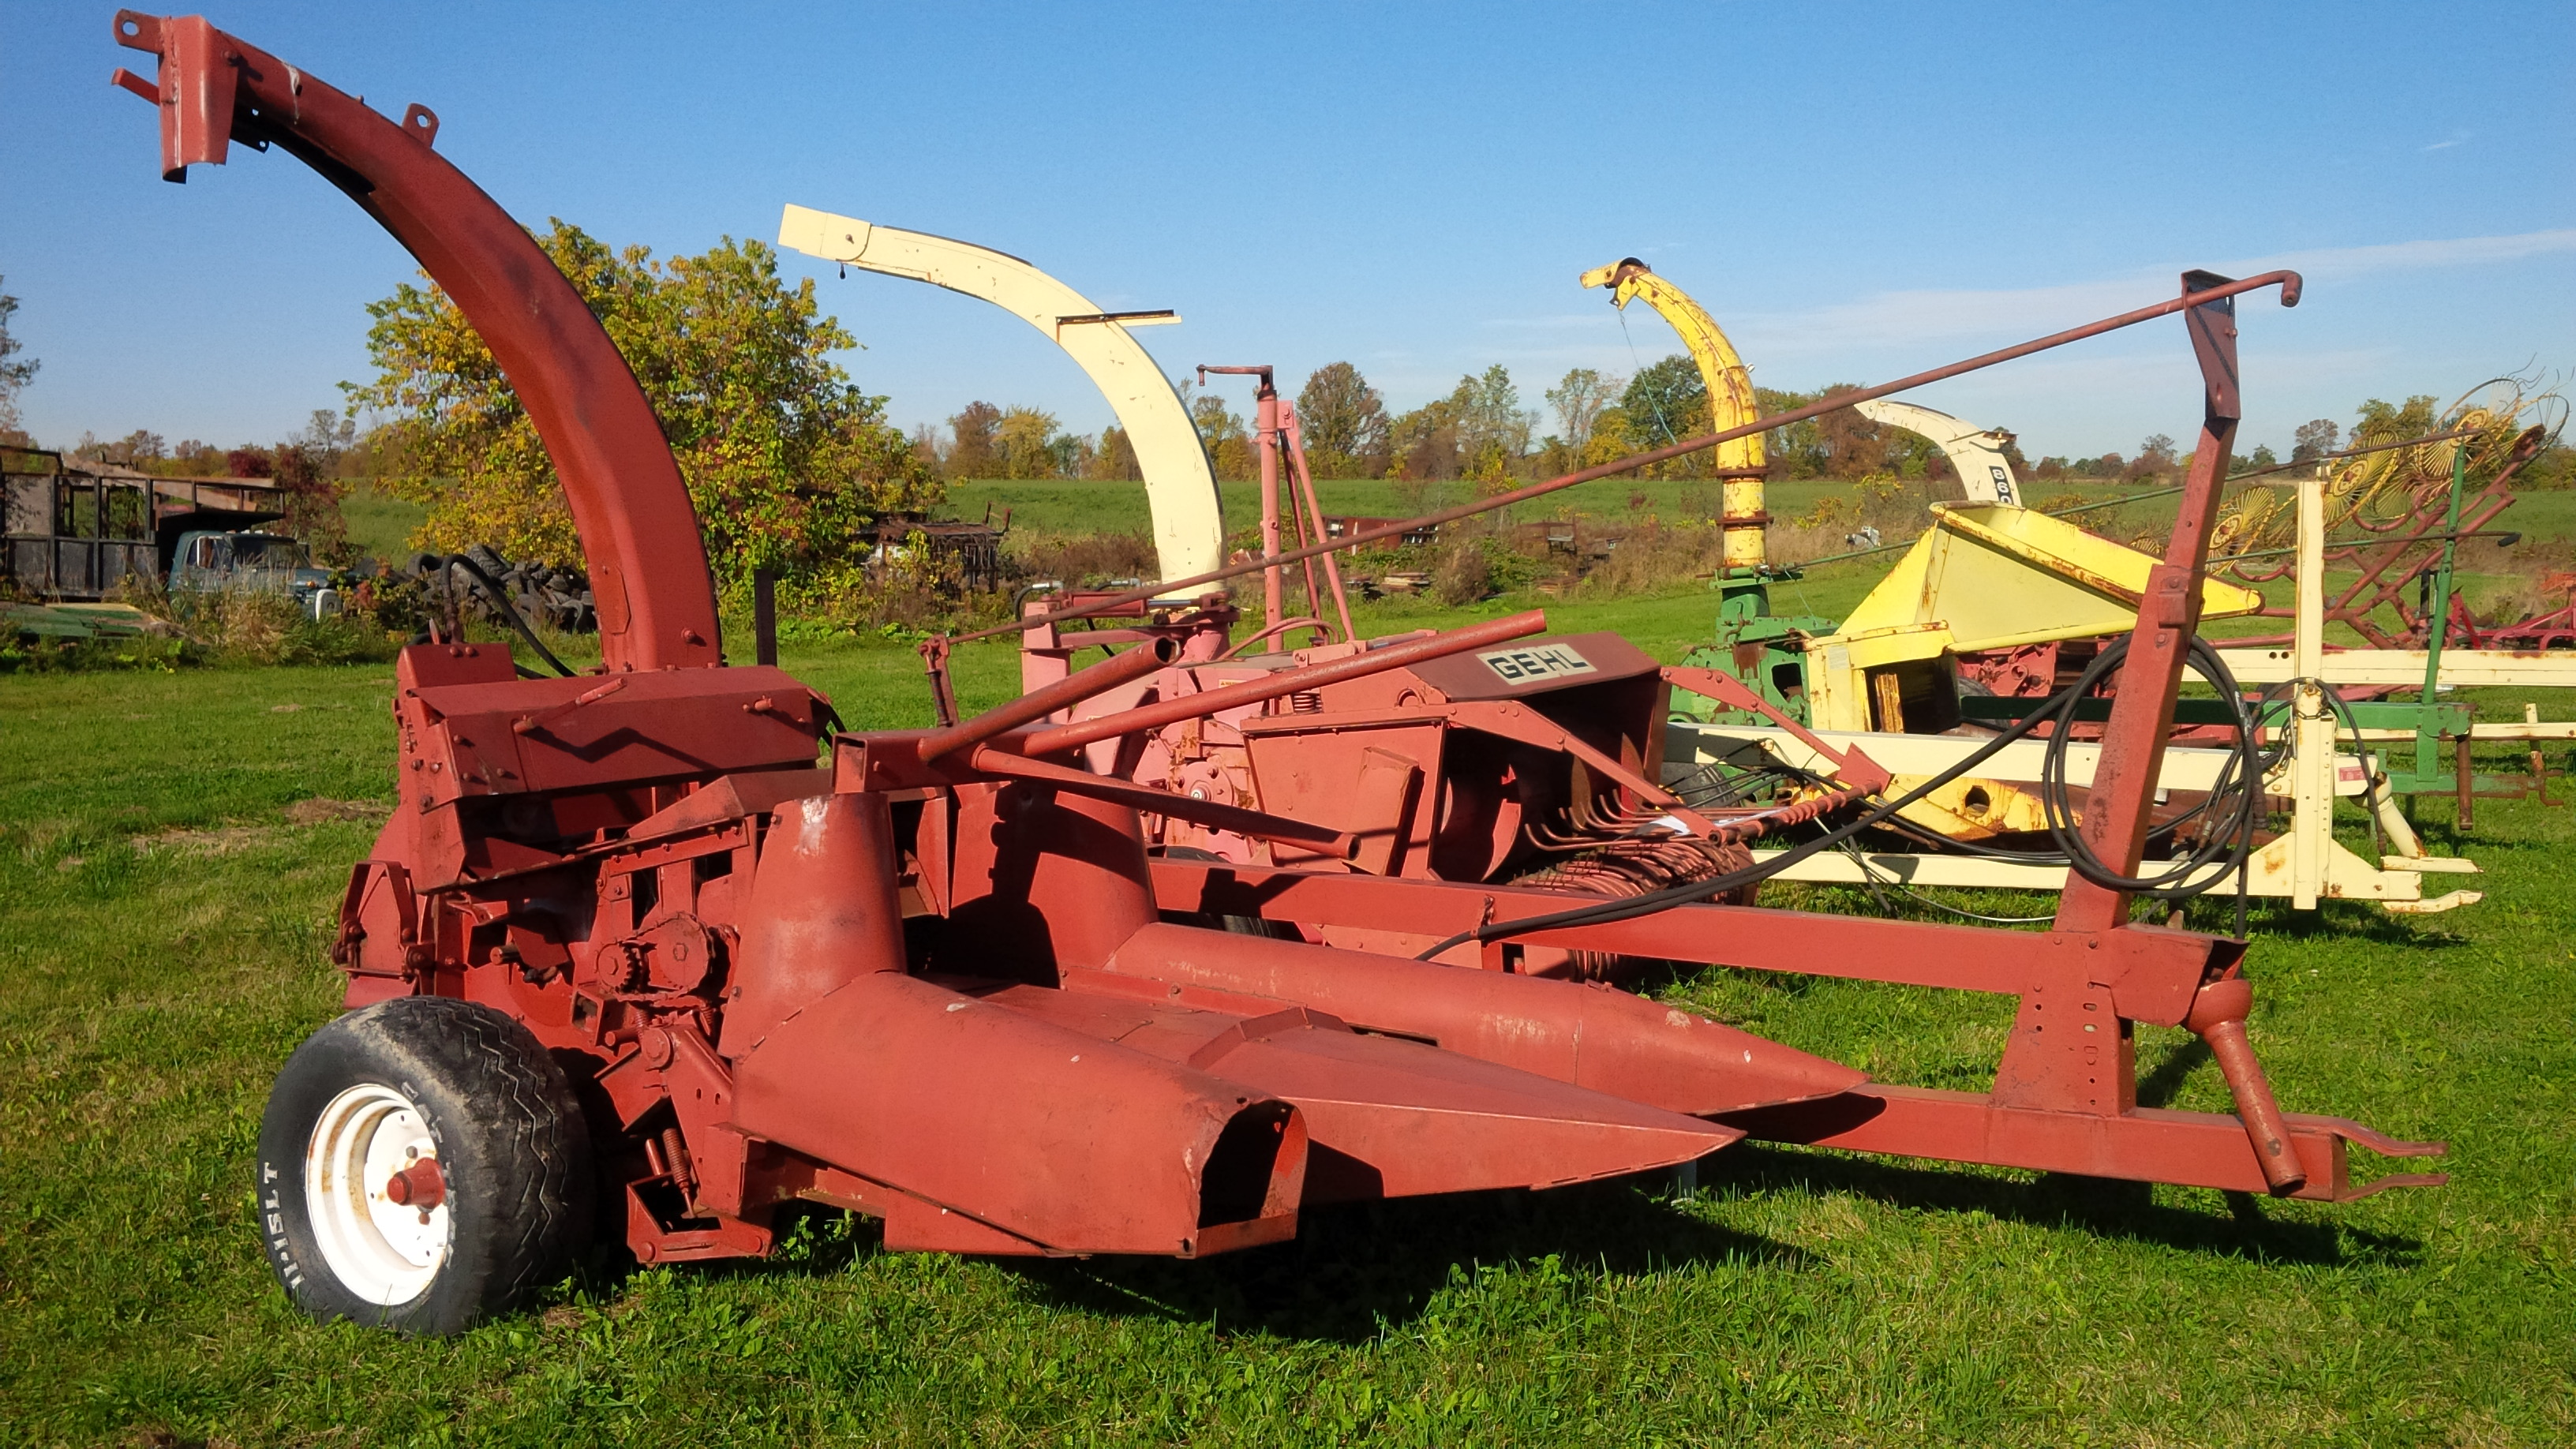 Hesston 7020 Forage Harvester for sale in Pembroke, ON